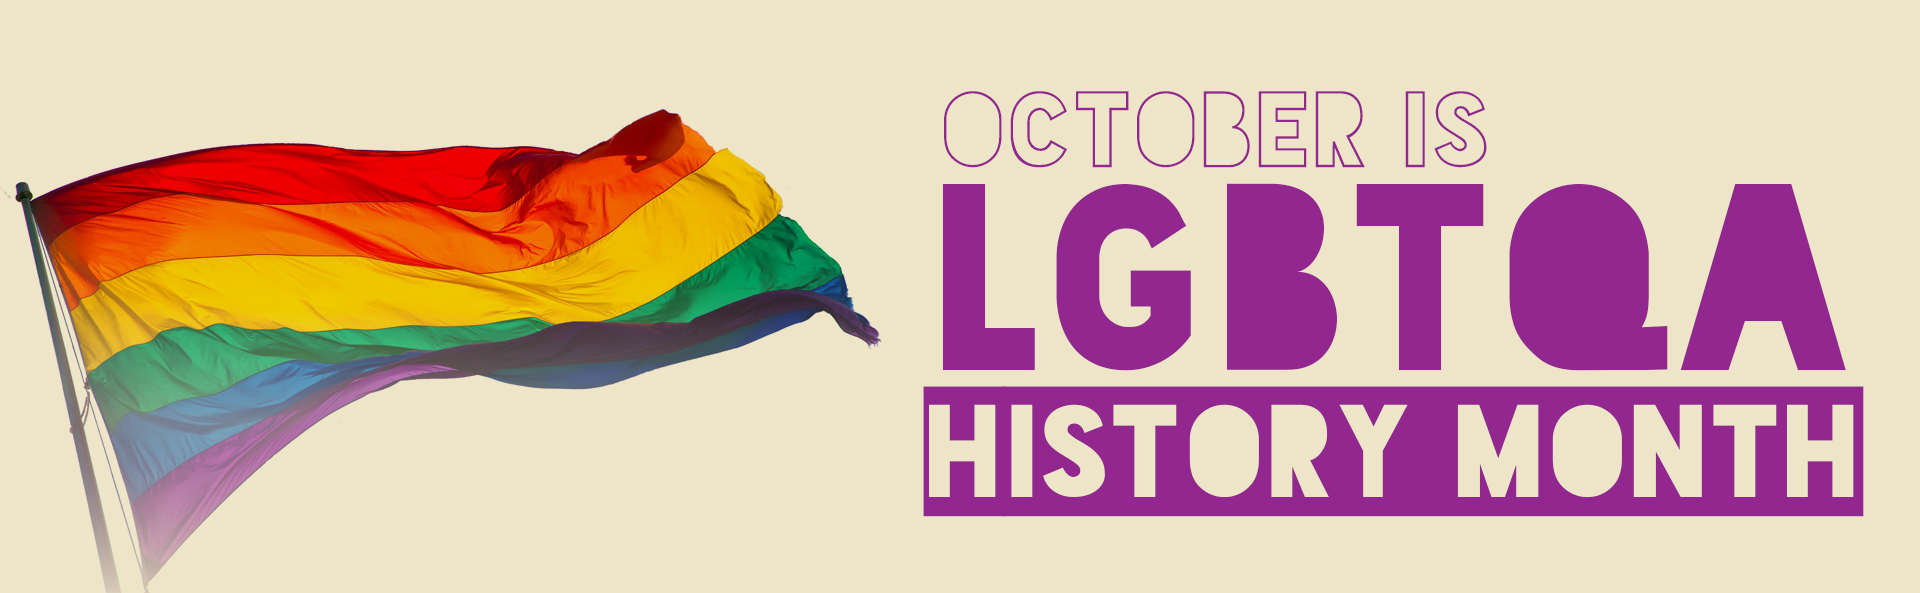 LGBTQA+ History Month is observed annually in October to recognize and celebrate the achievements of LGBTQA+ community and those who support and advocate.